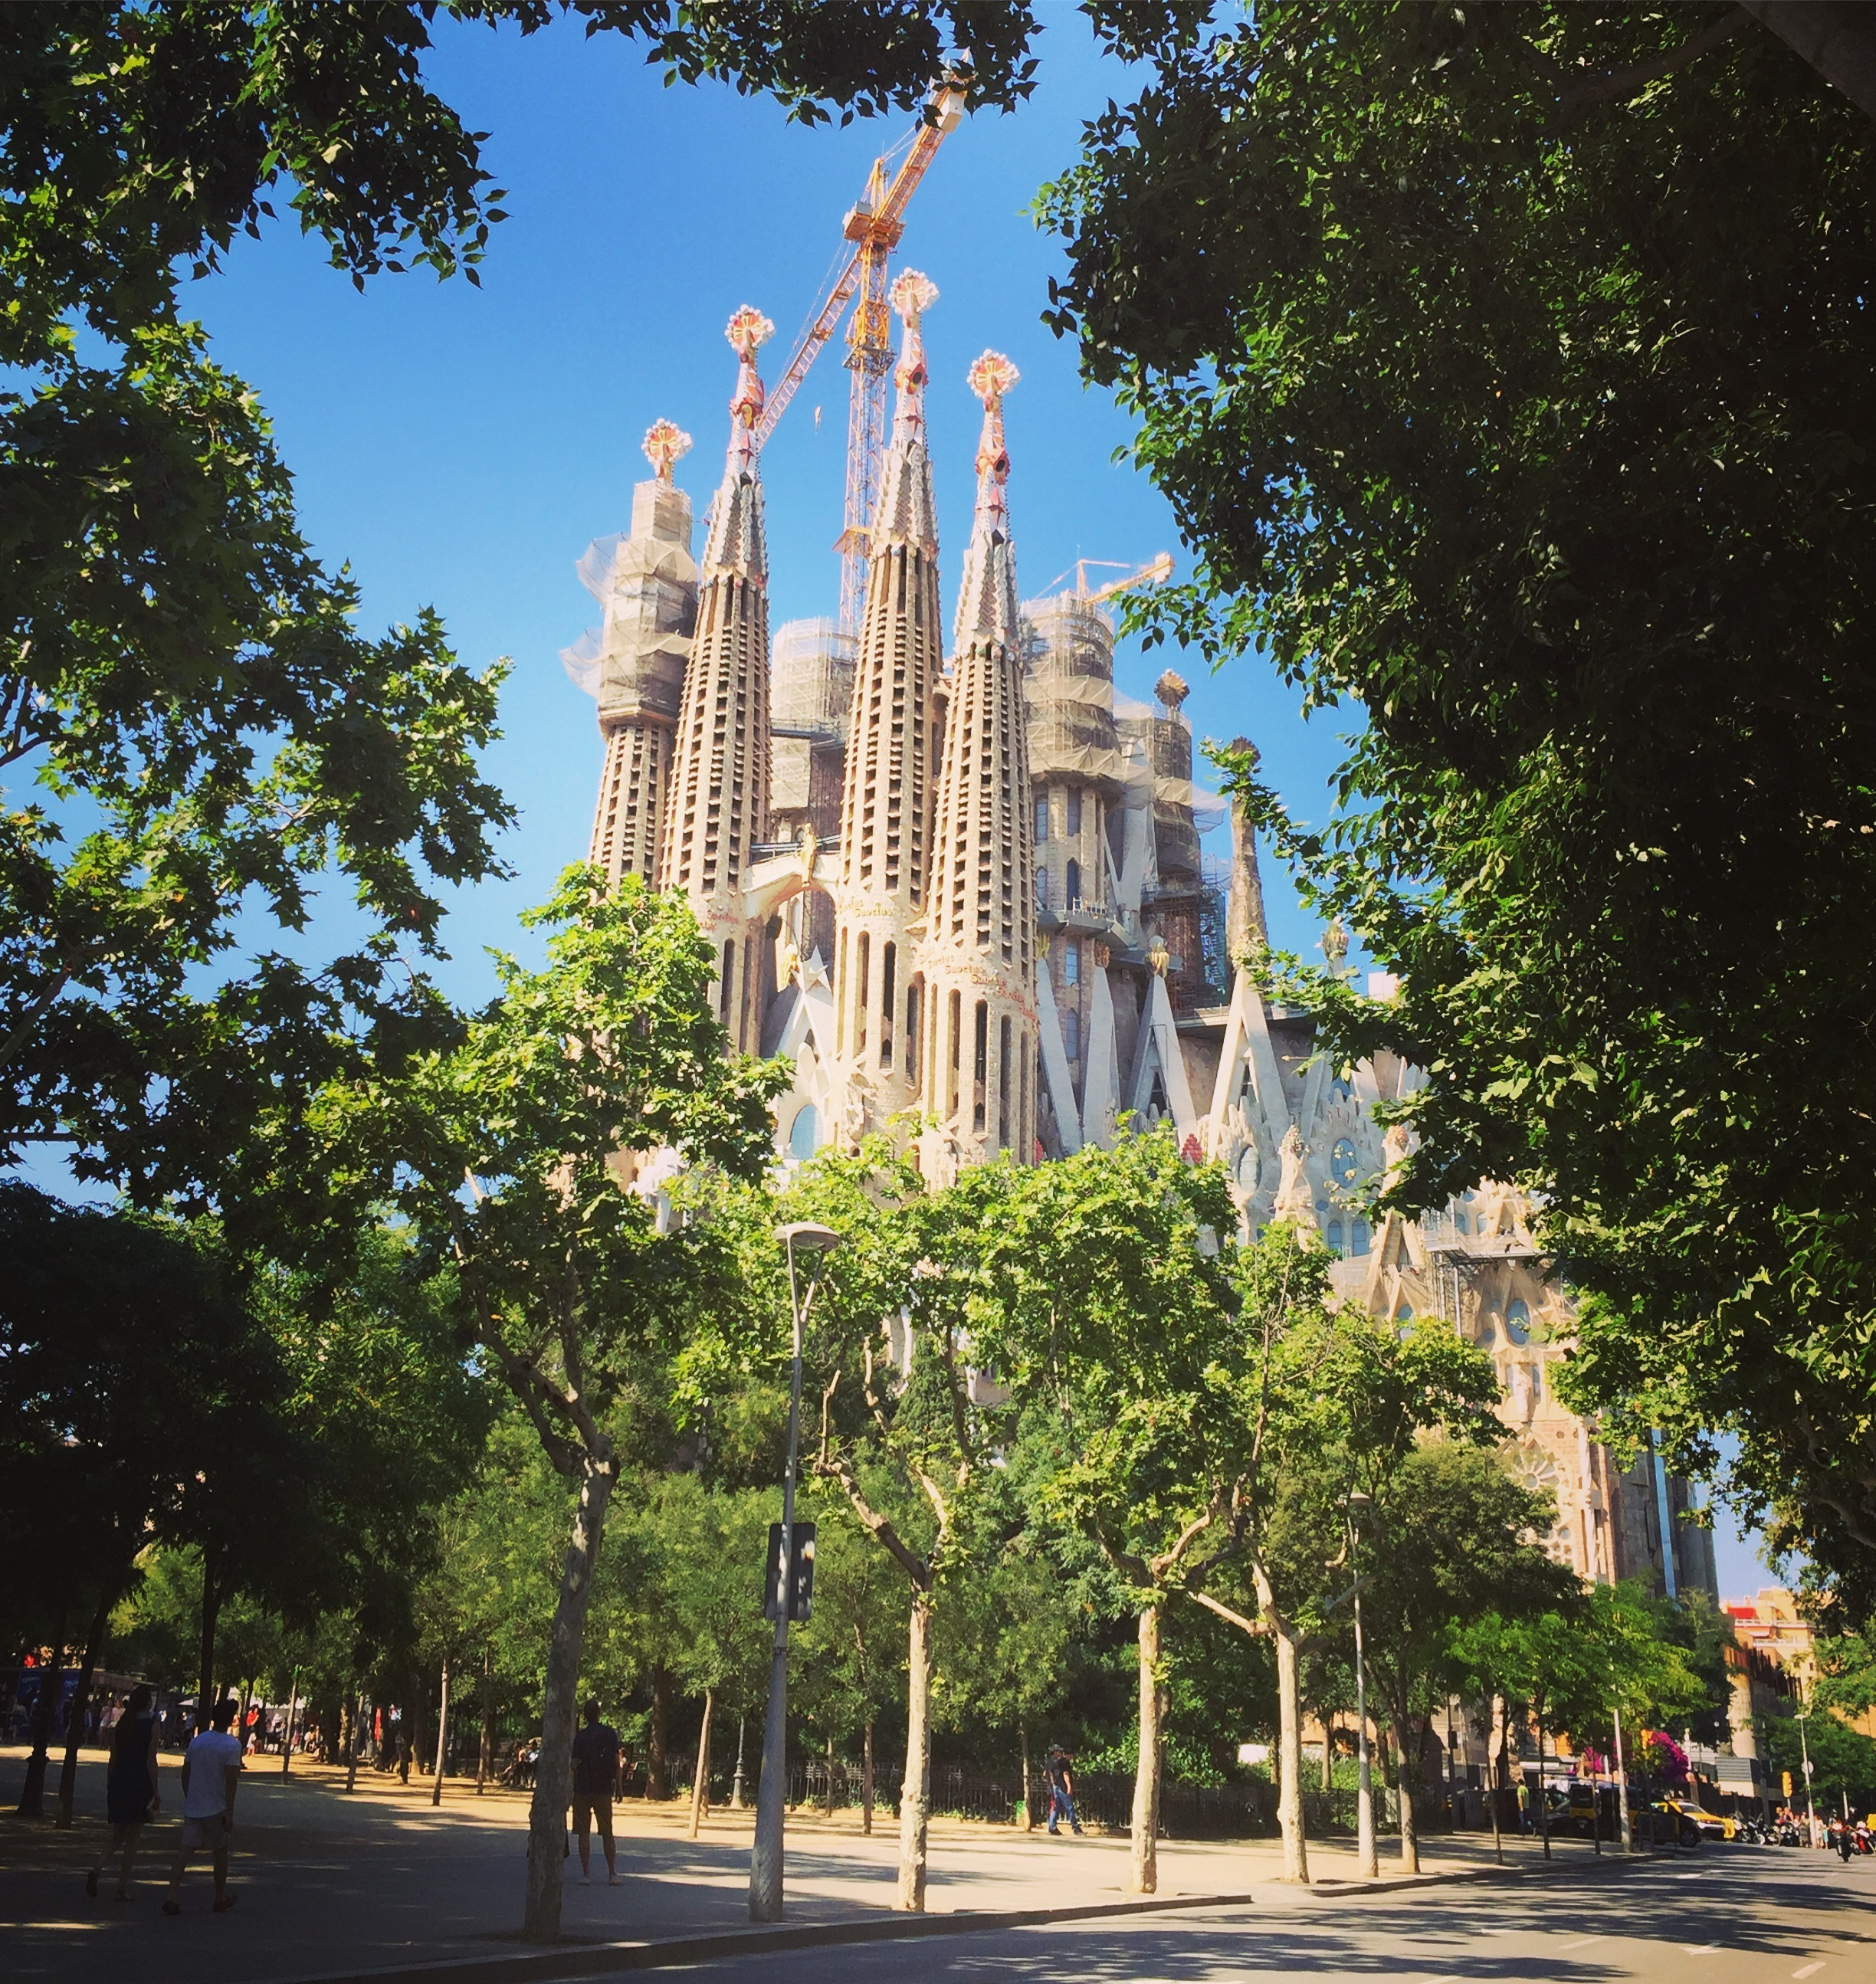 La Sagrada Familia - Barcelona, Spain